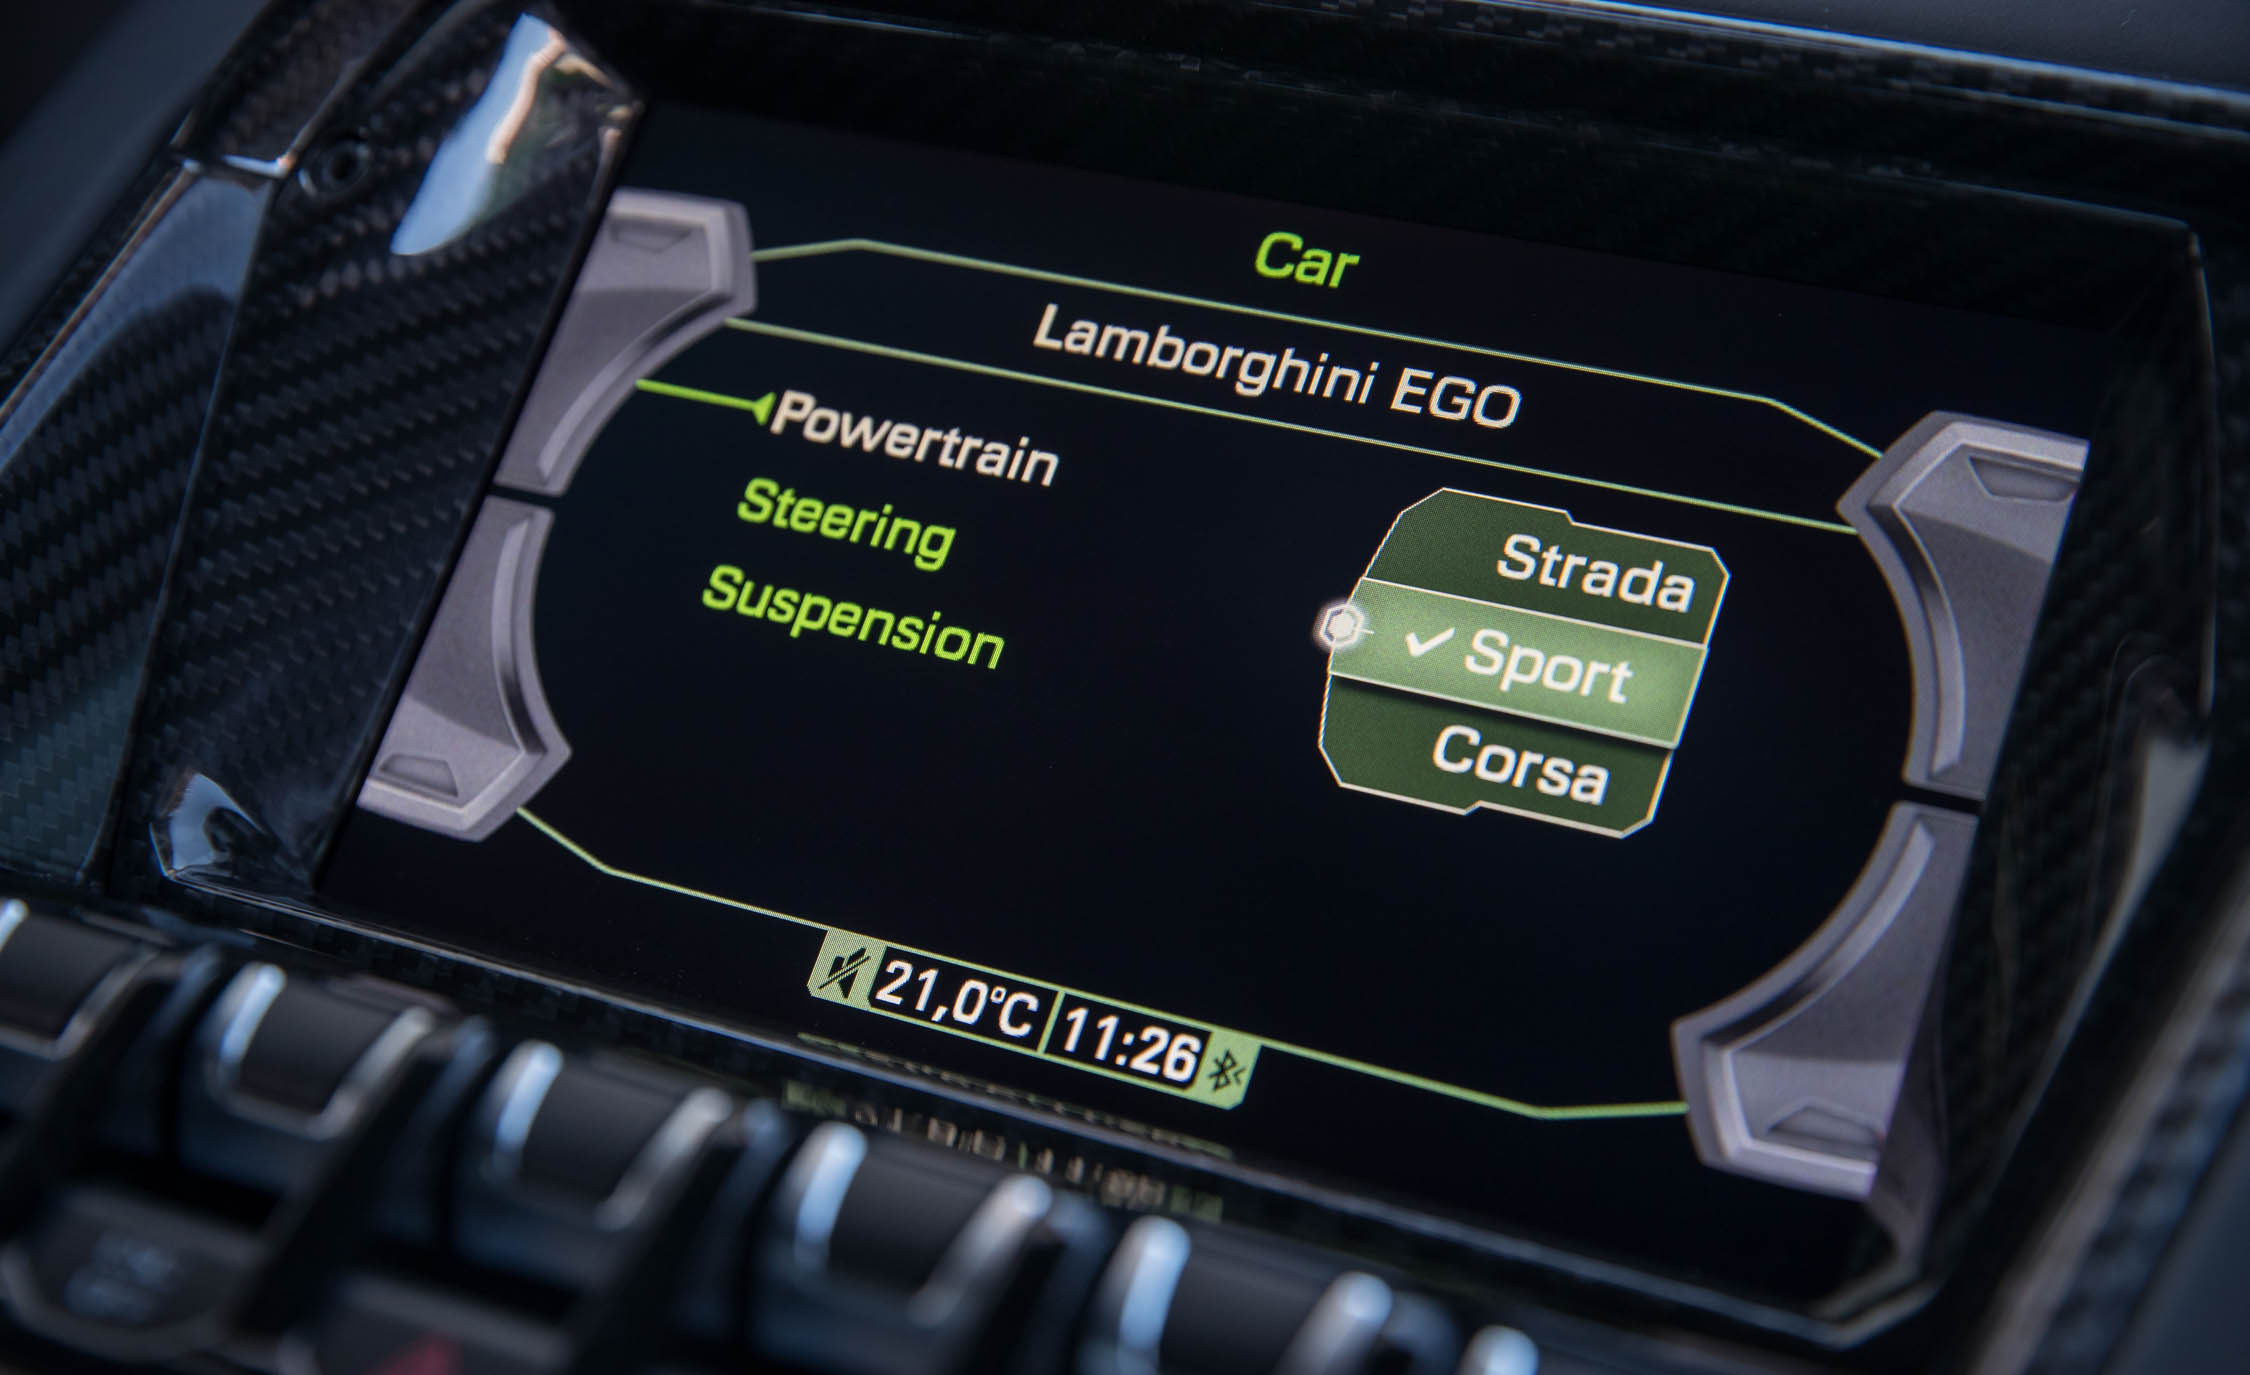 2017 Lamborghini Aventador S Interior View Center Headunit Screen (Photo 14 of 20)